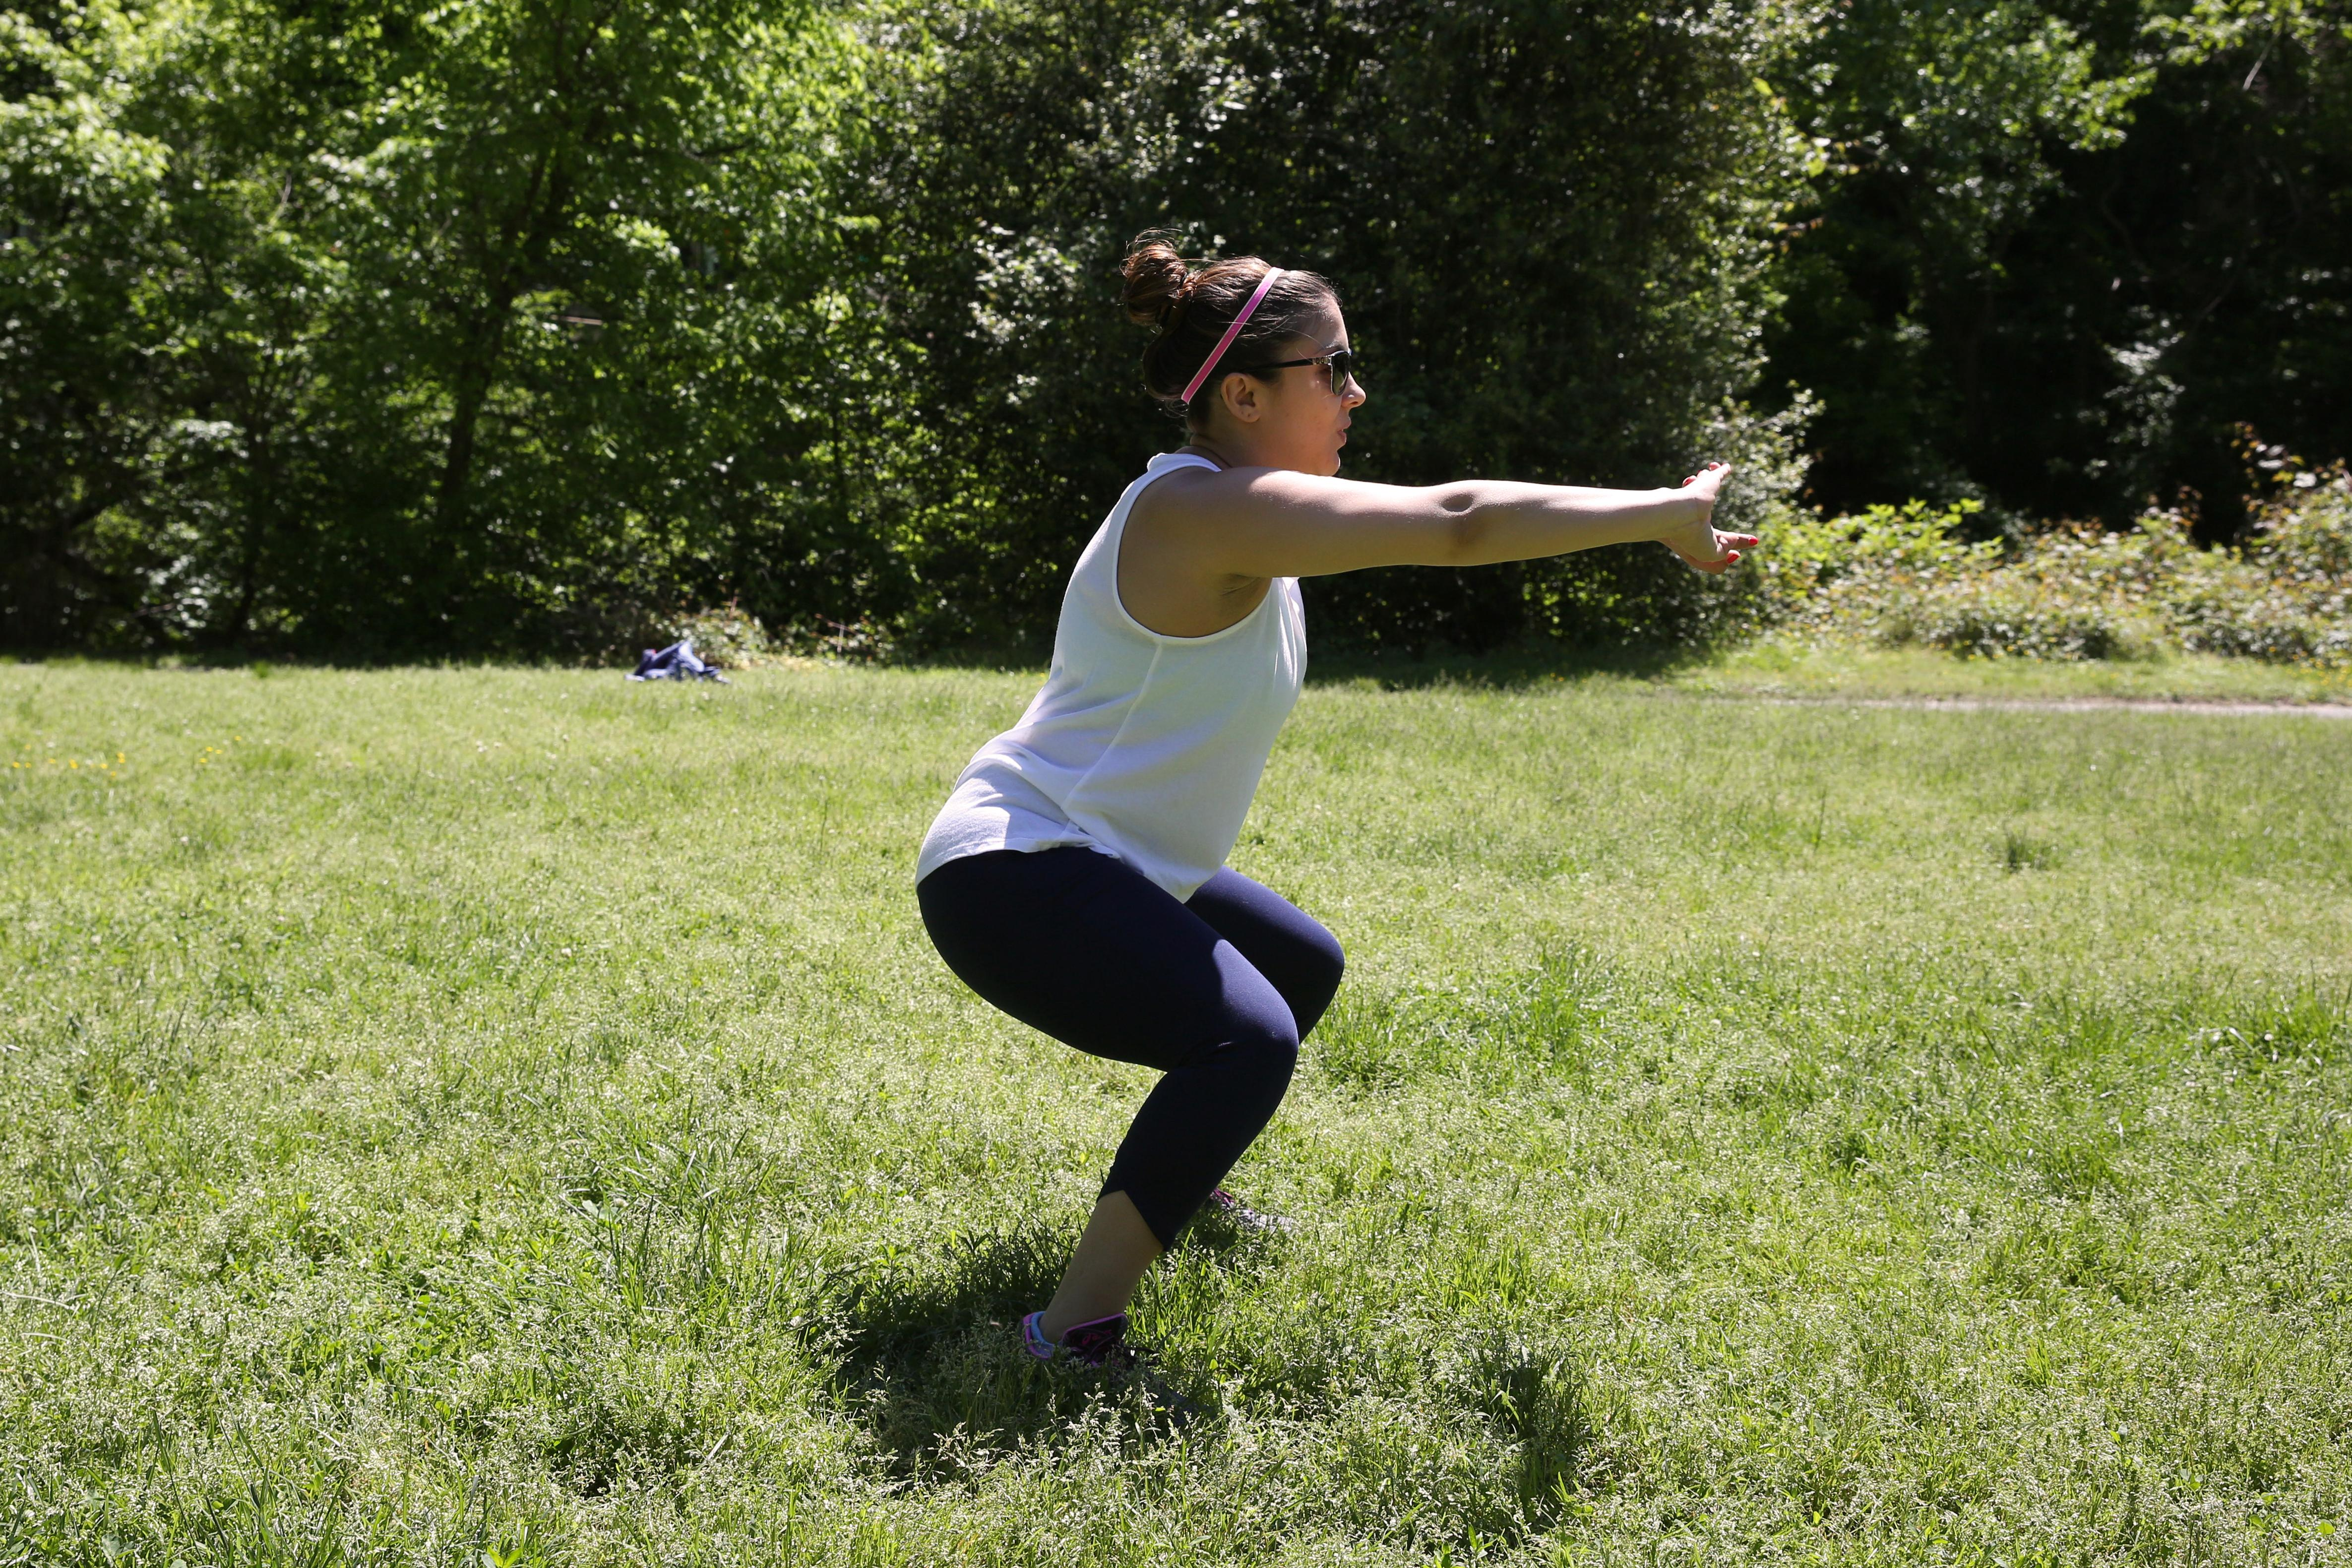 EXERCISE: Squats / SETS: 3 sets of 20 / (Amanda Andrade-Rhoades/DC Refined)